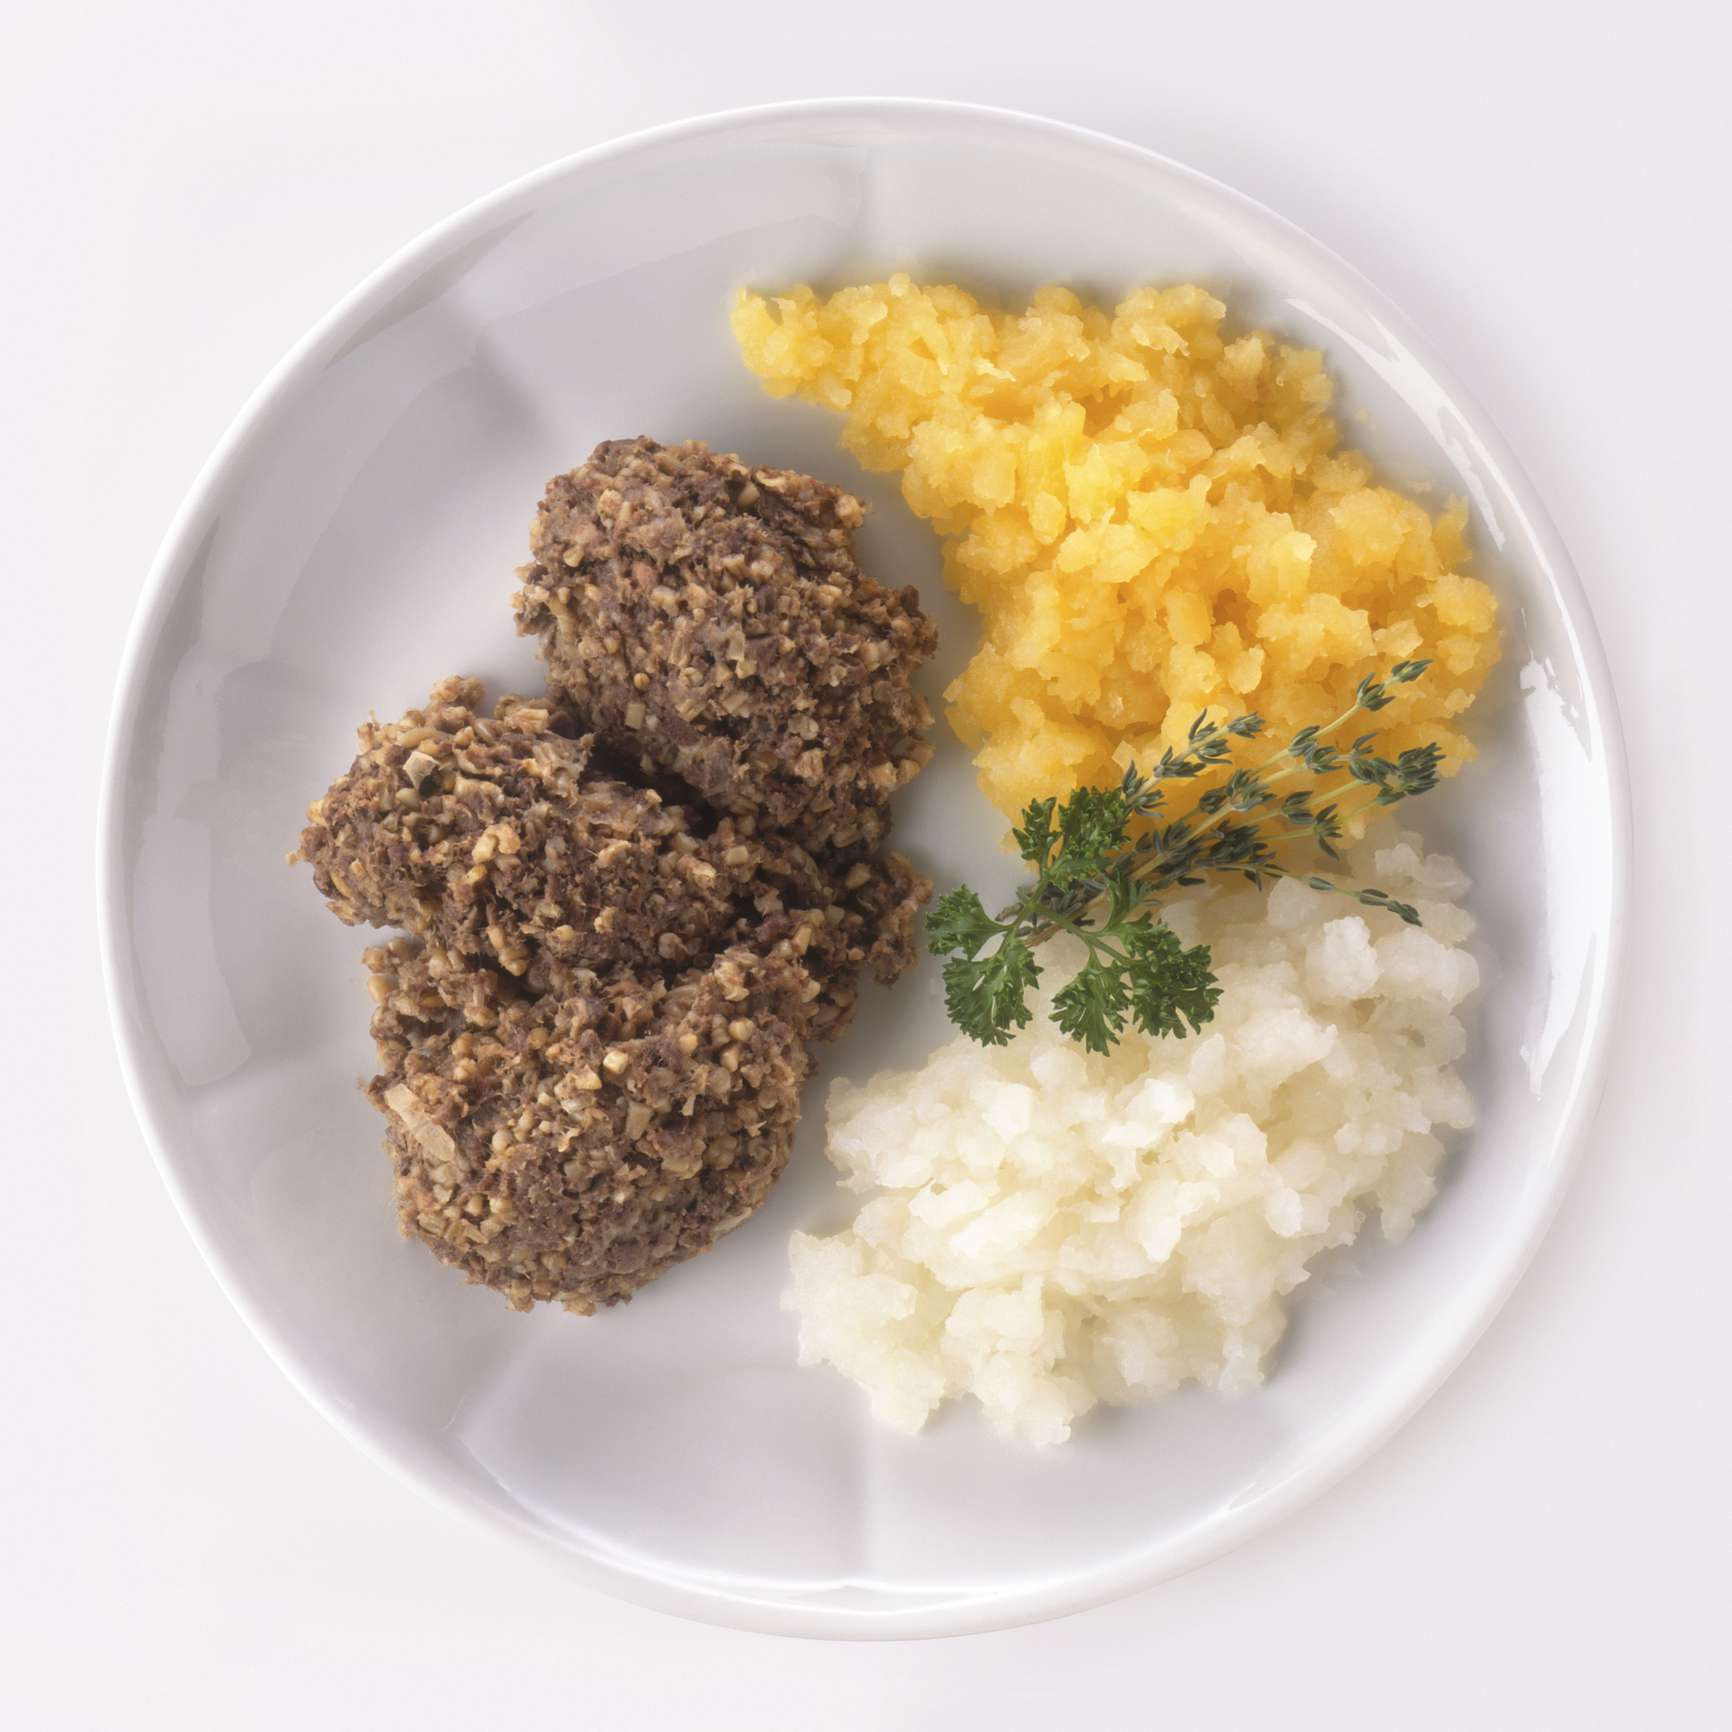 Haggis is a traditional Scottish dish often served with mash potatoes